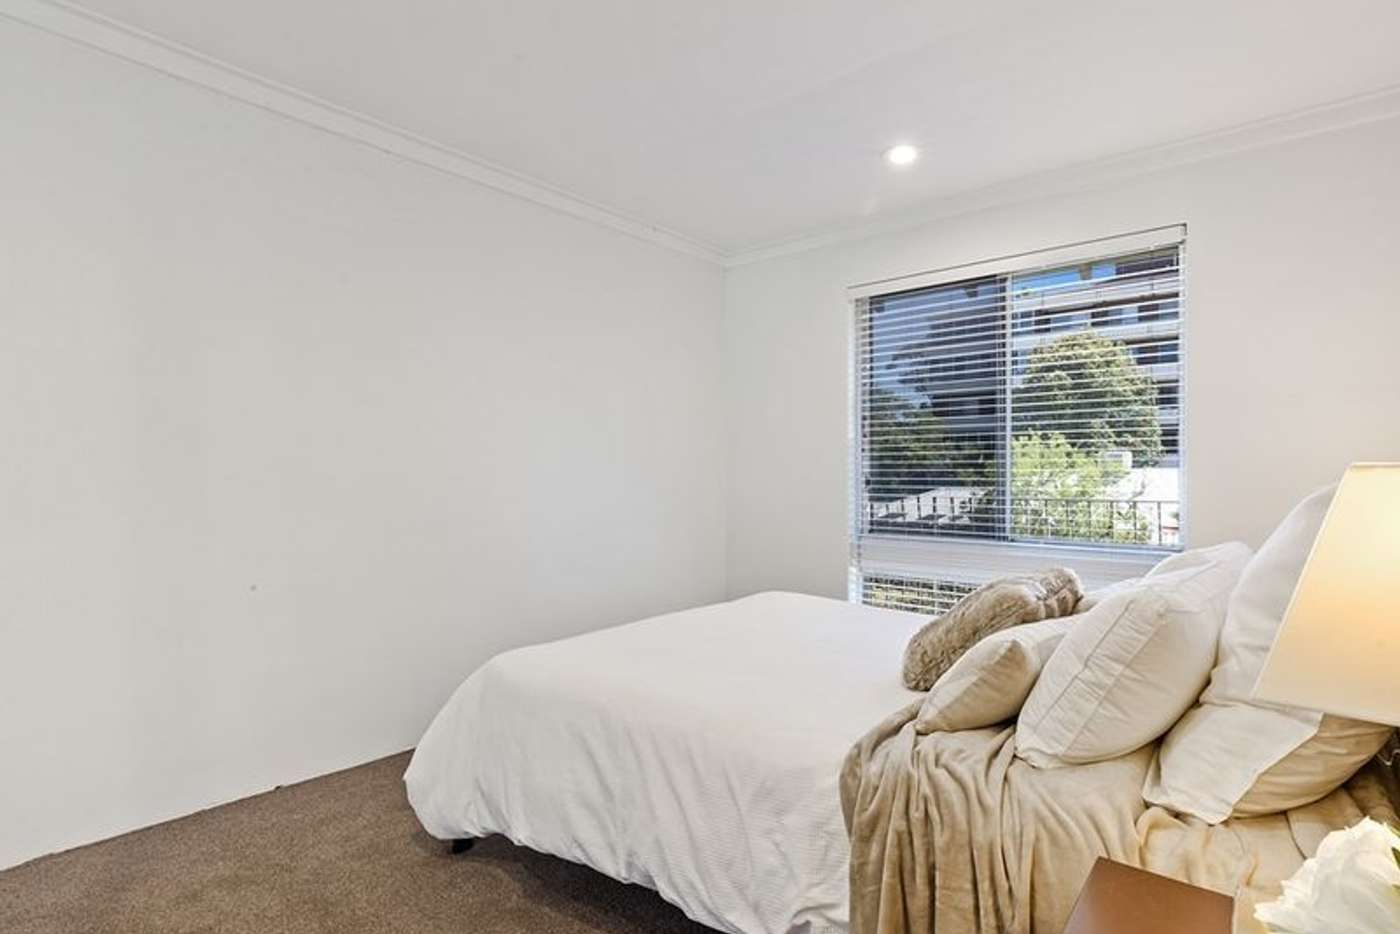 Fifth view of Homely apartment listing, 11/147 Derby Road, Shenton Park WA 6008